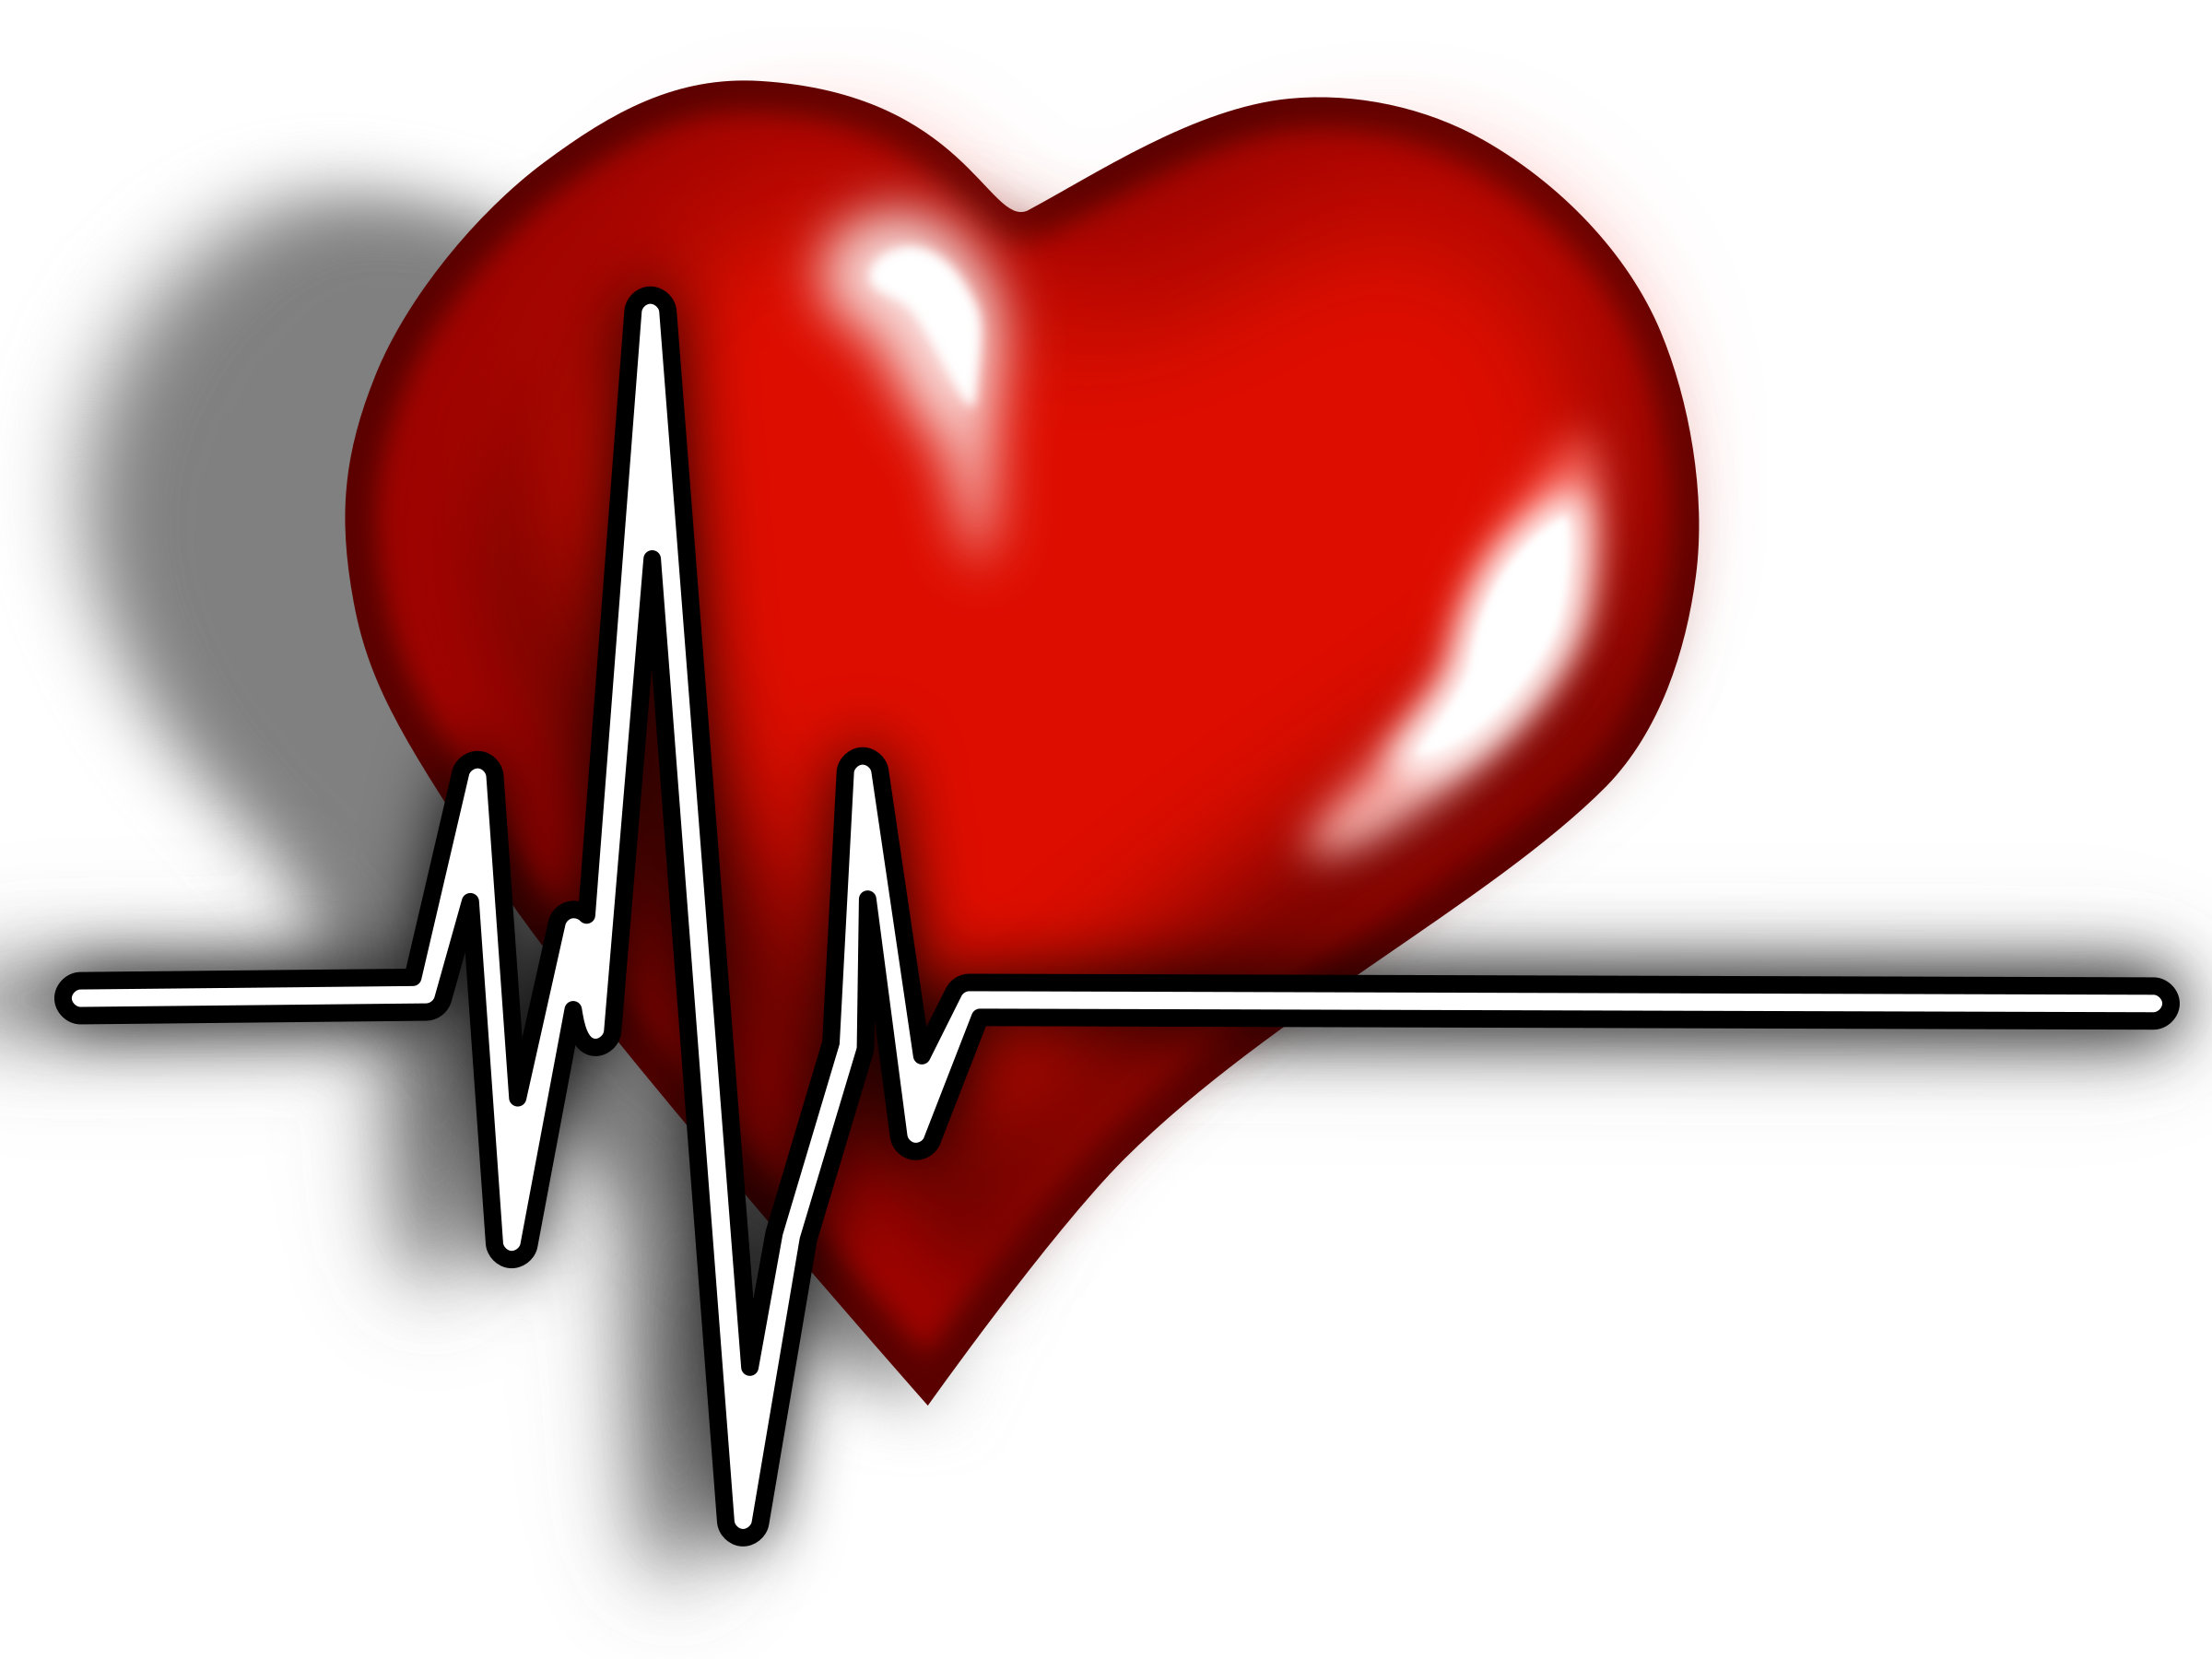 Heart clipart doctor. Ecg logo hearts l